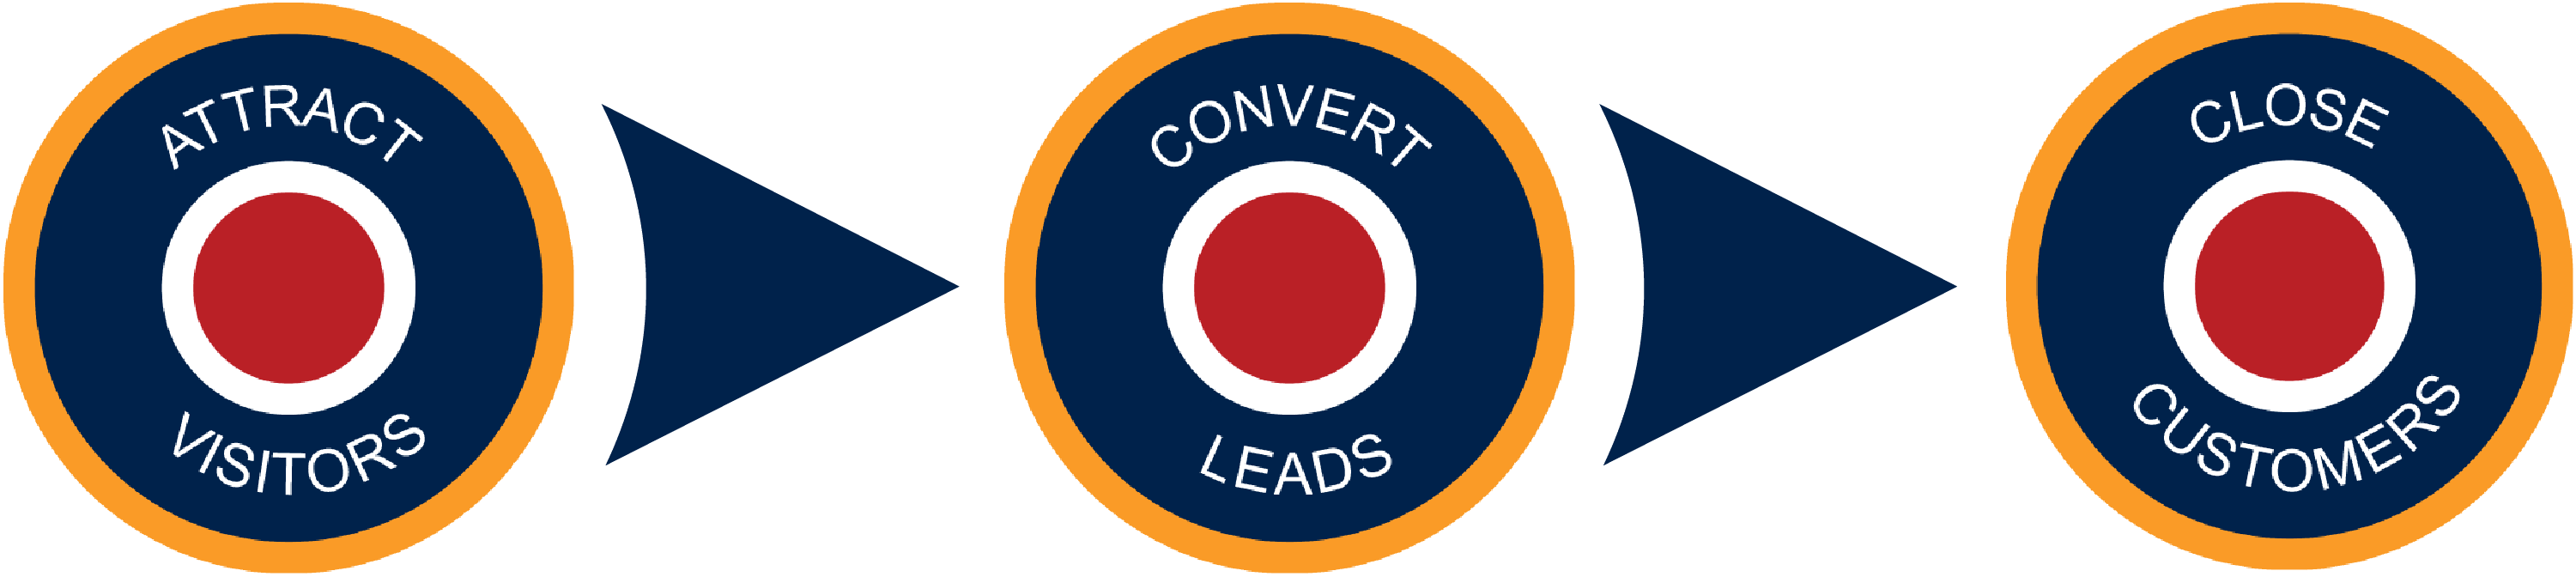 Lead generation tactics by Inbound Marketing Agency - Spitfire Inbound.png